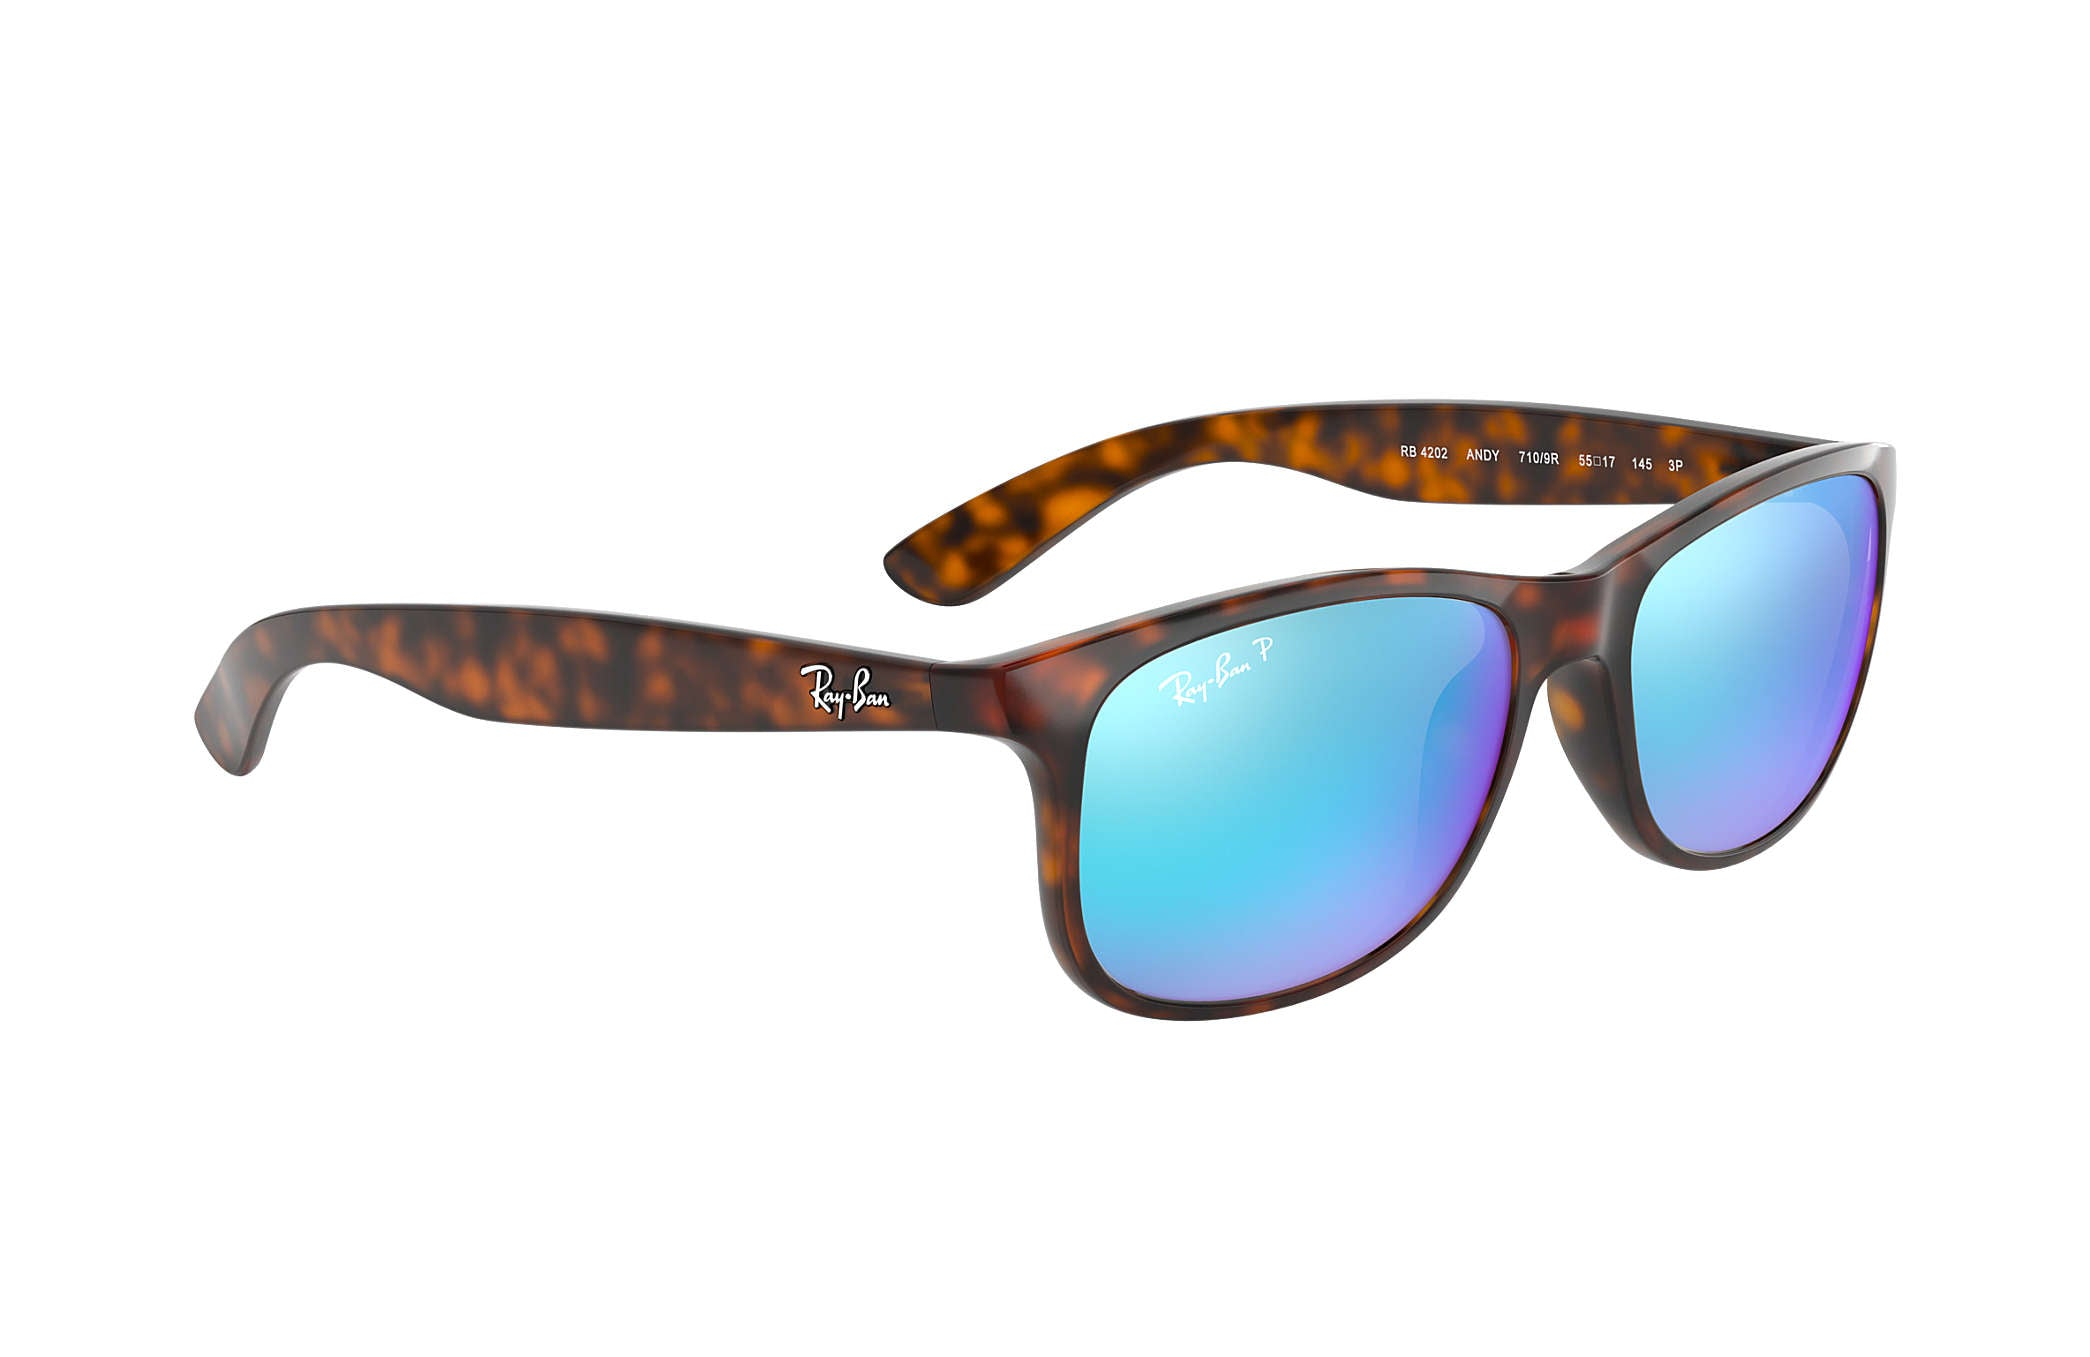 RAY-BAN 0RB4202 - ANDY SUNGLASSES - OPTICIWEAR.COM